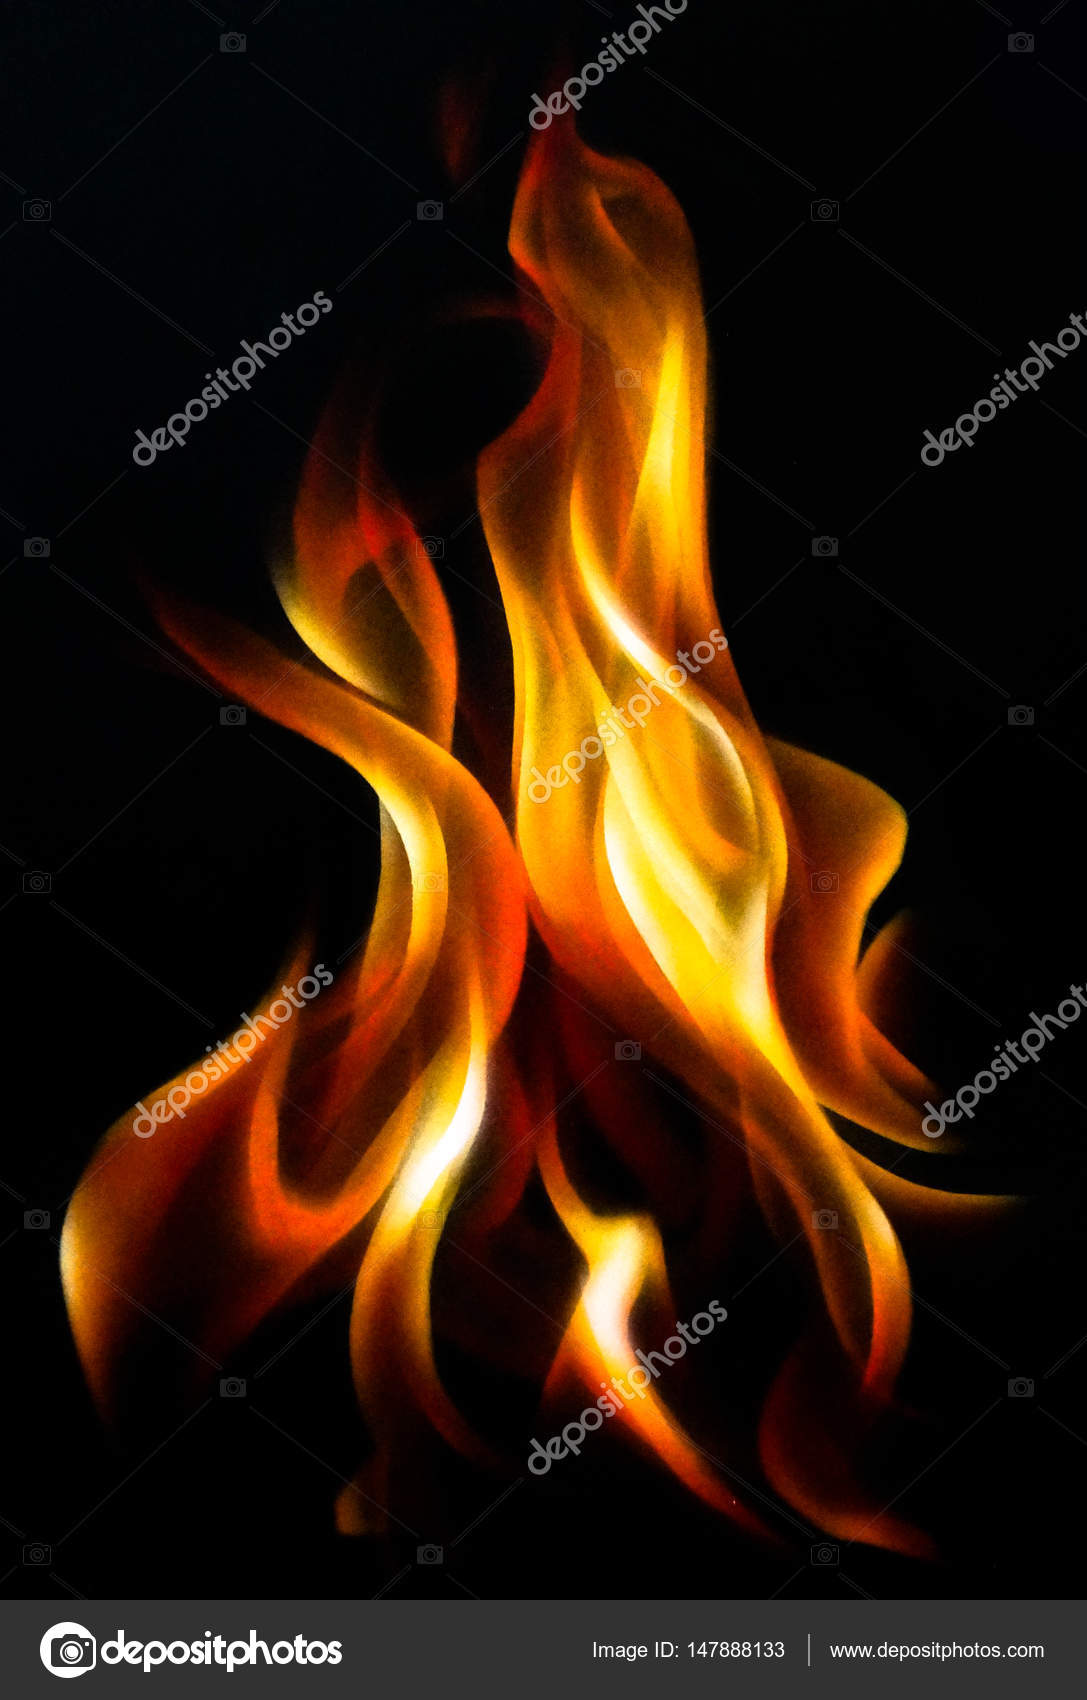 Fire Flame Airbrush Painting Hand Drawing Stock Photo